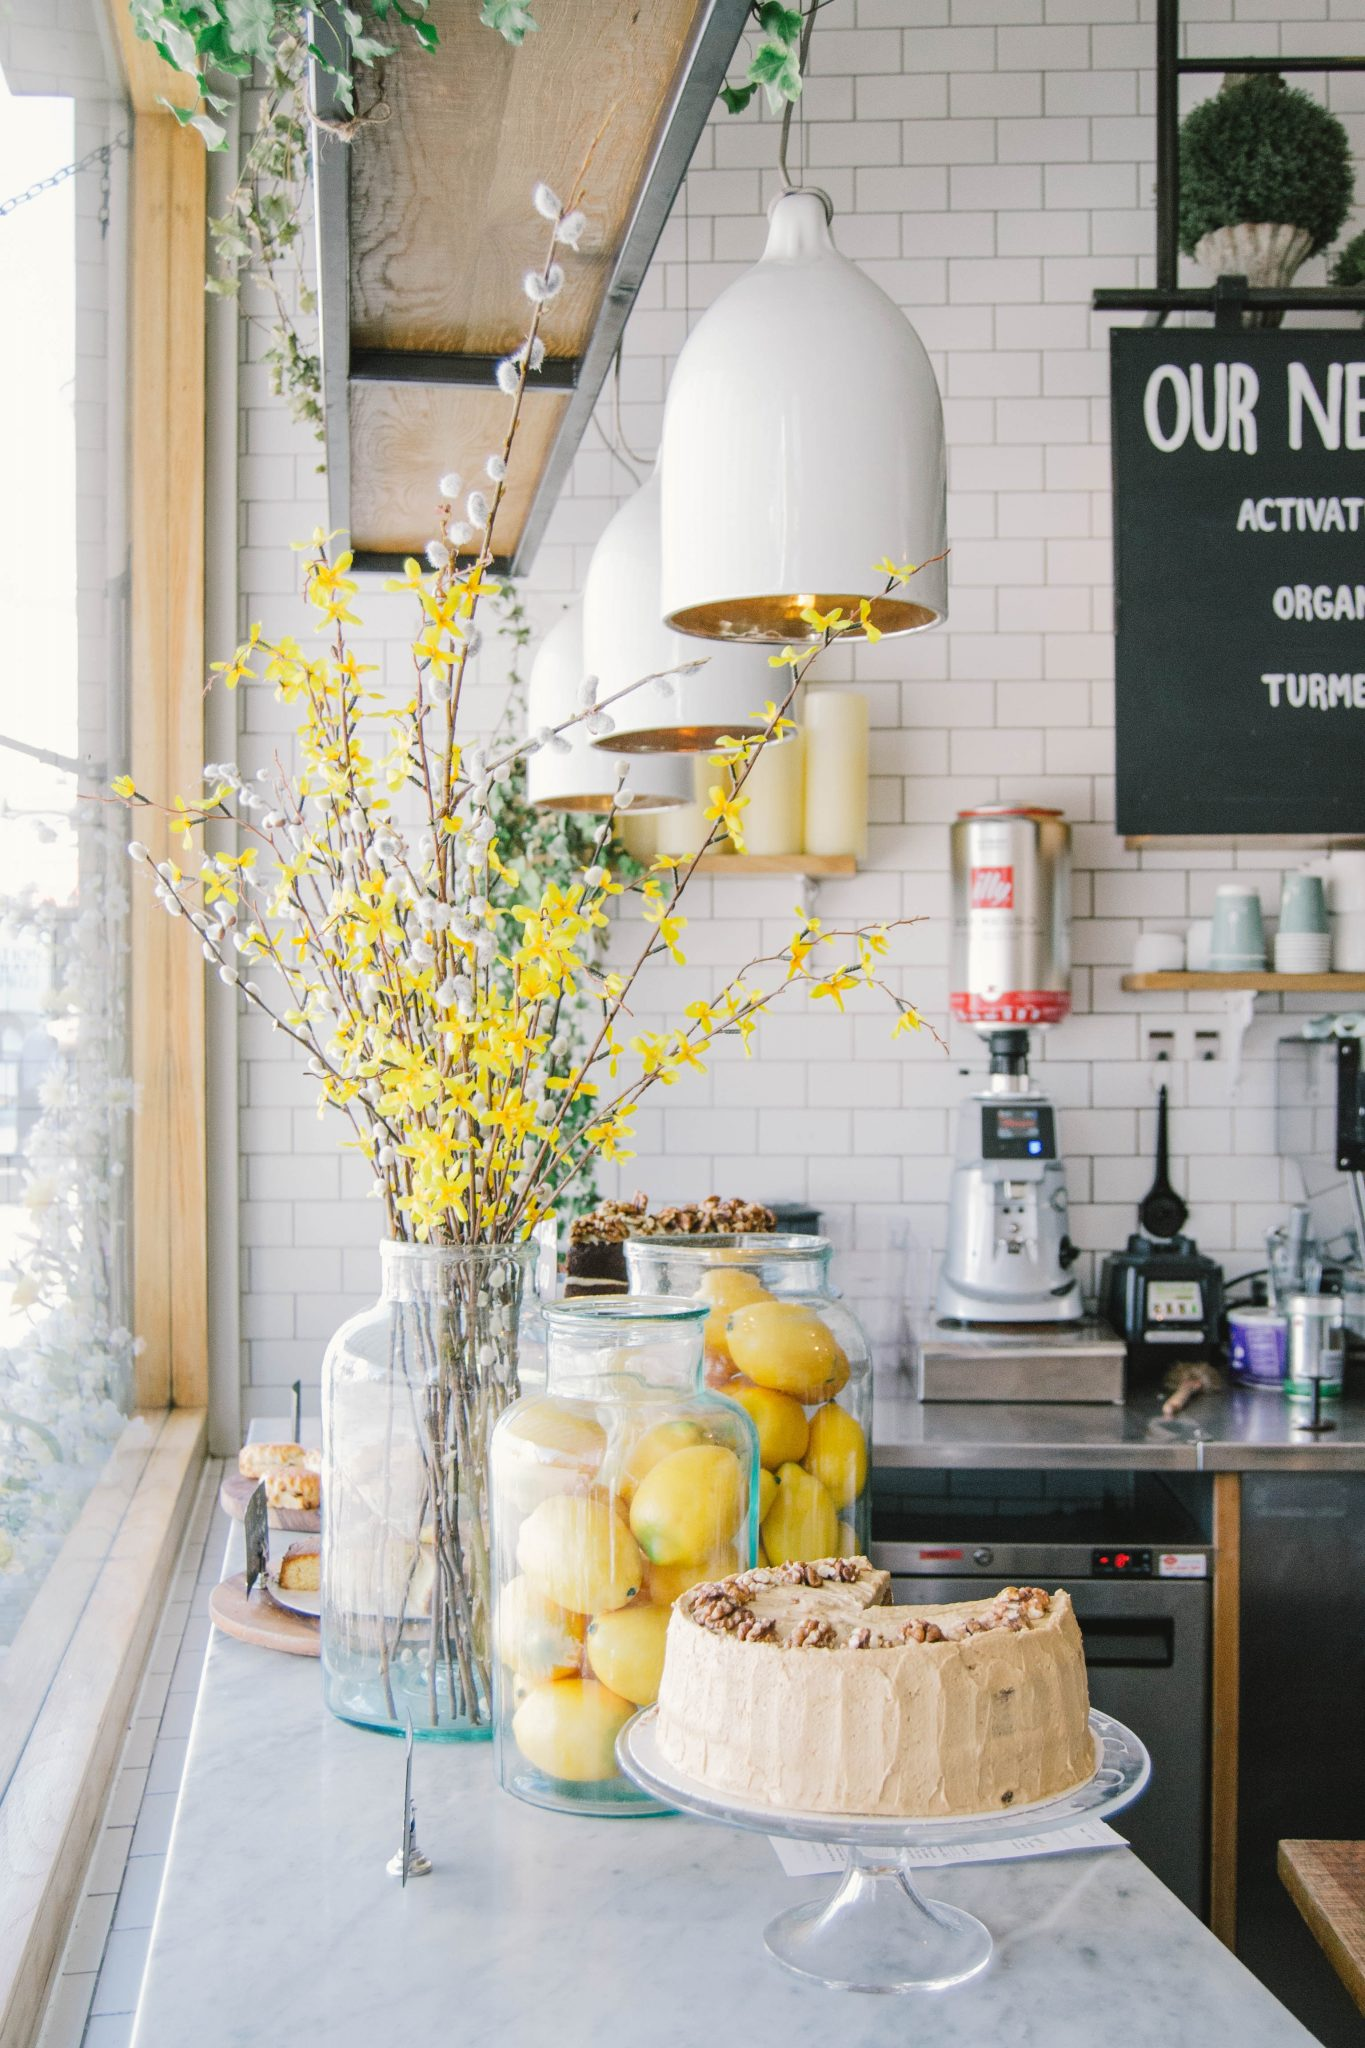 23 Impressive Kitchen Counter Decor Ideas for Styling ...